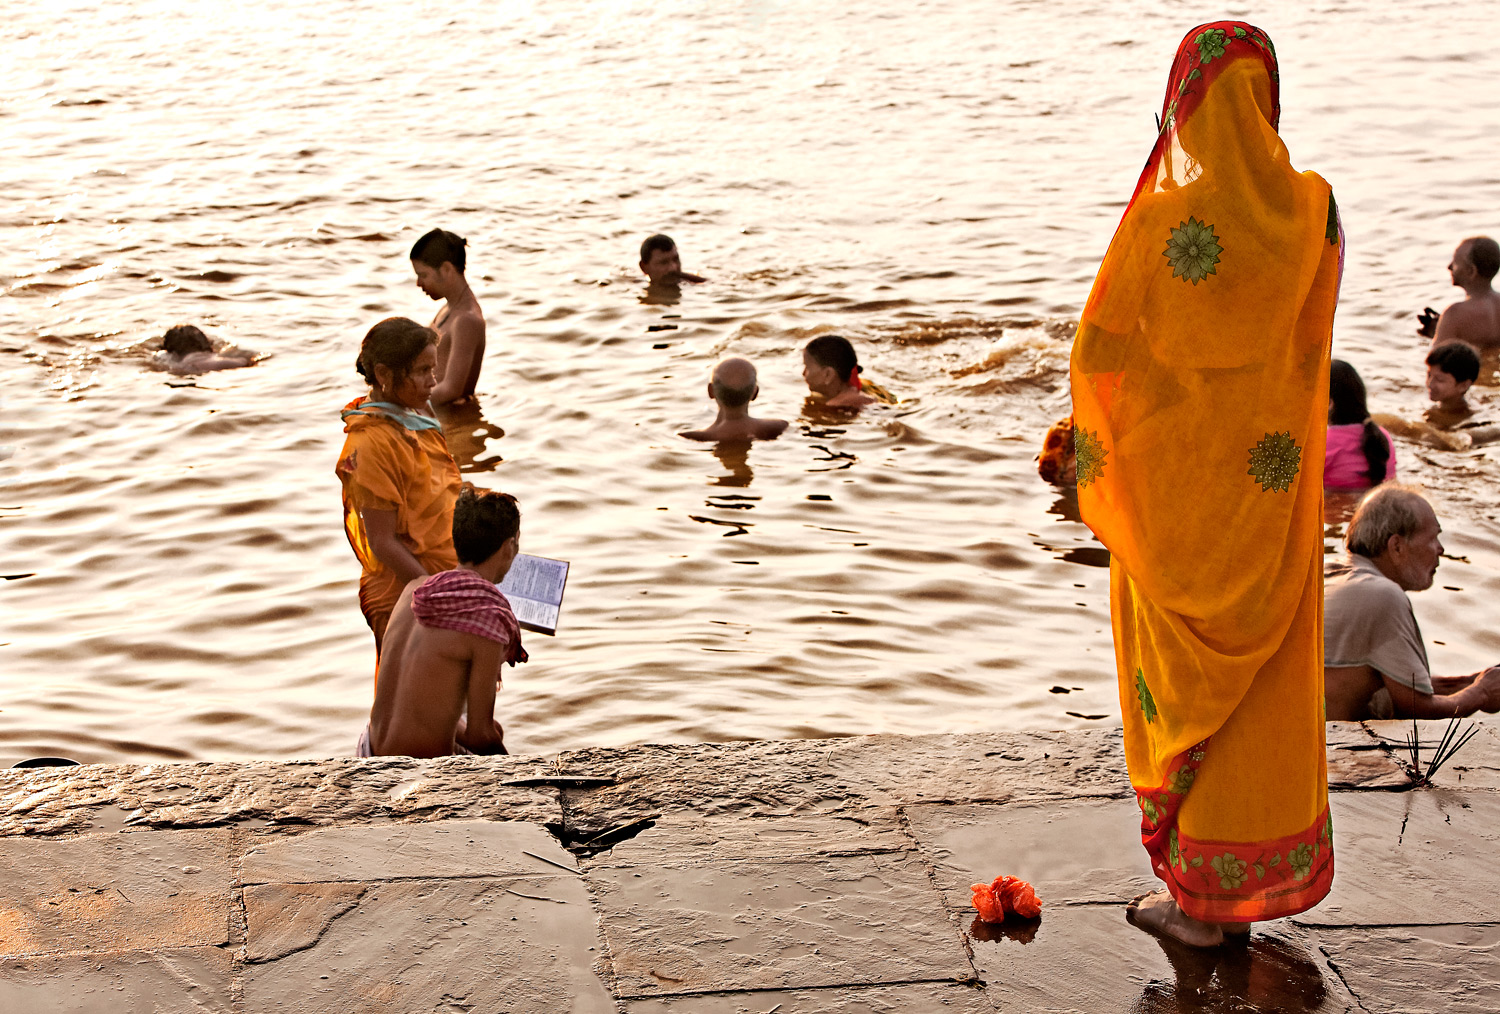 Morning ablutions, Assi ghat, Varanasi, India